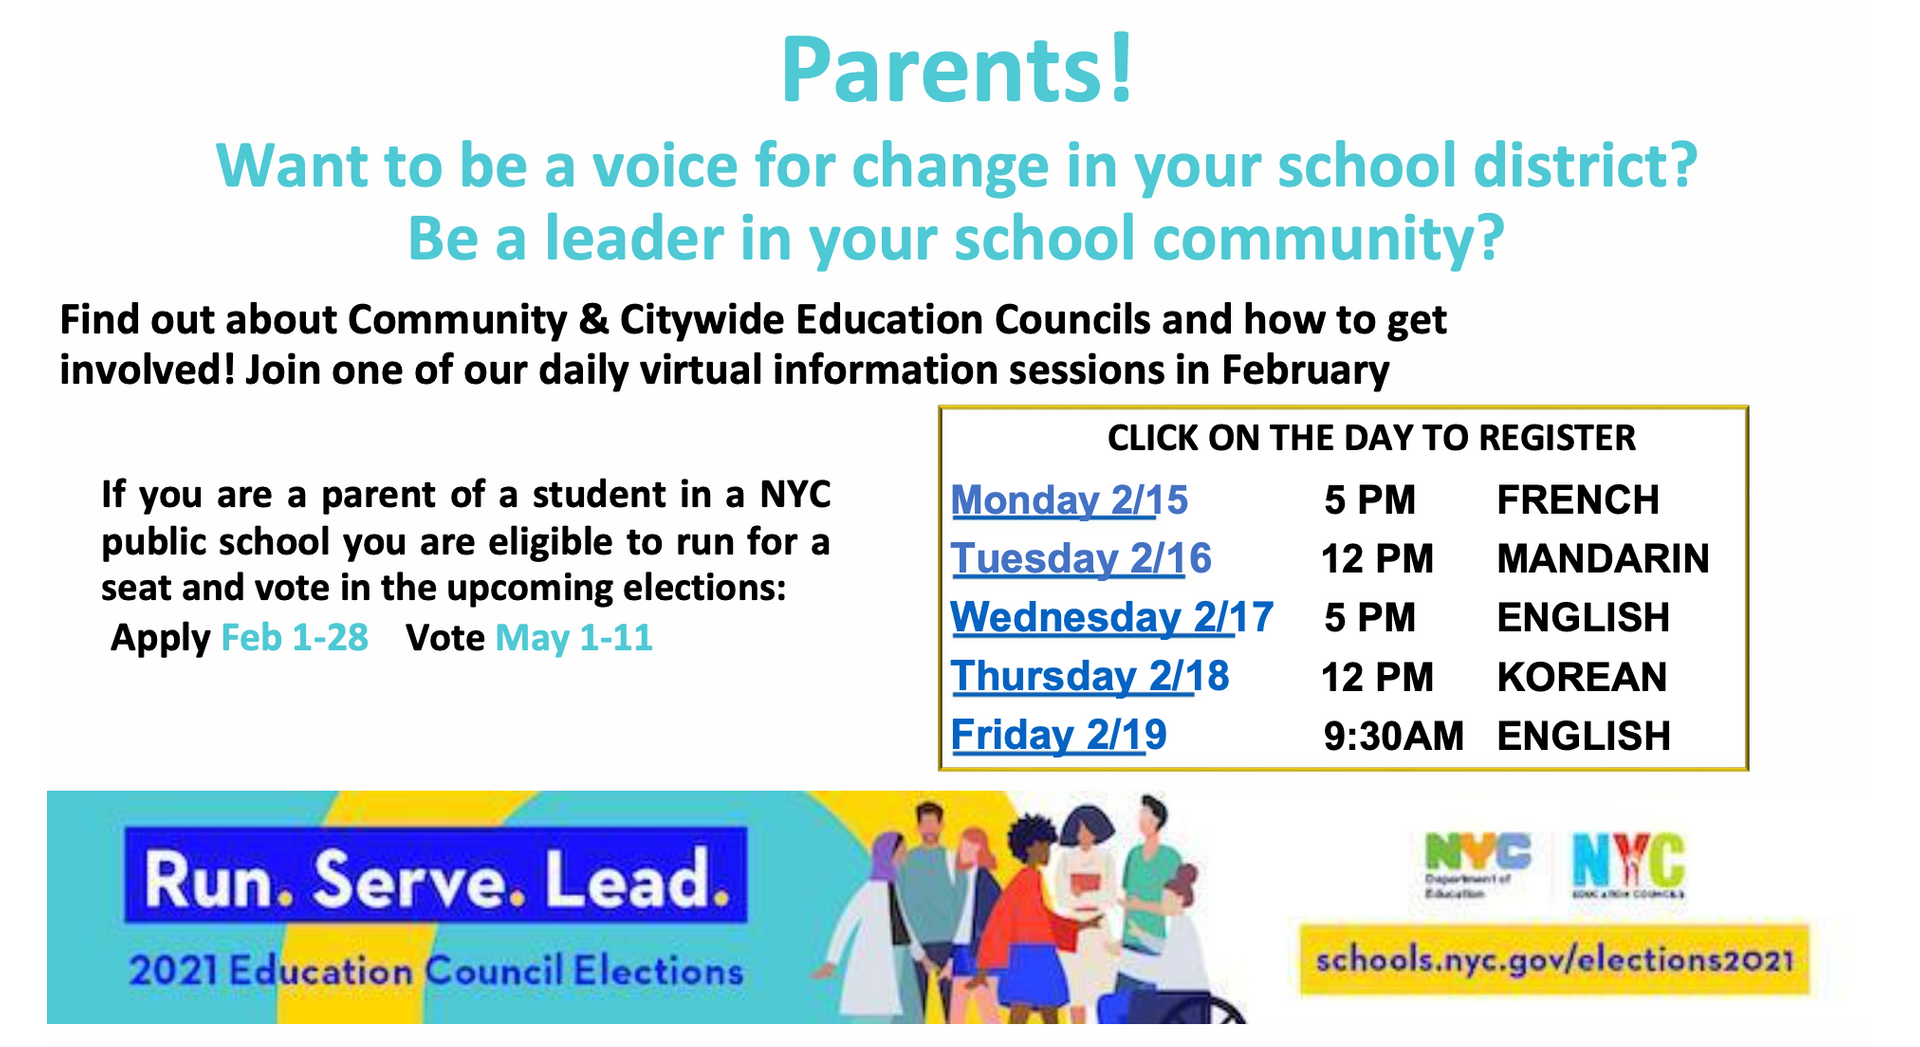 Flyer with information about the Community and Citywide Education Councils